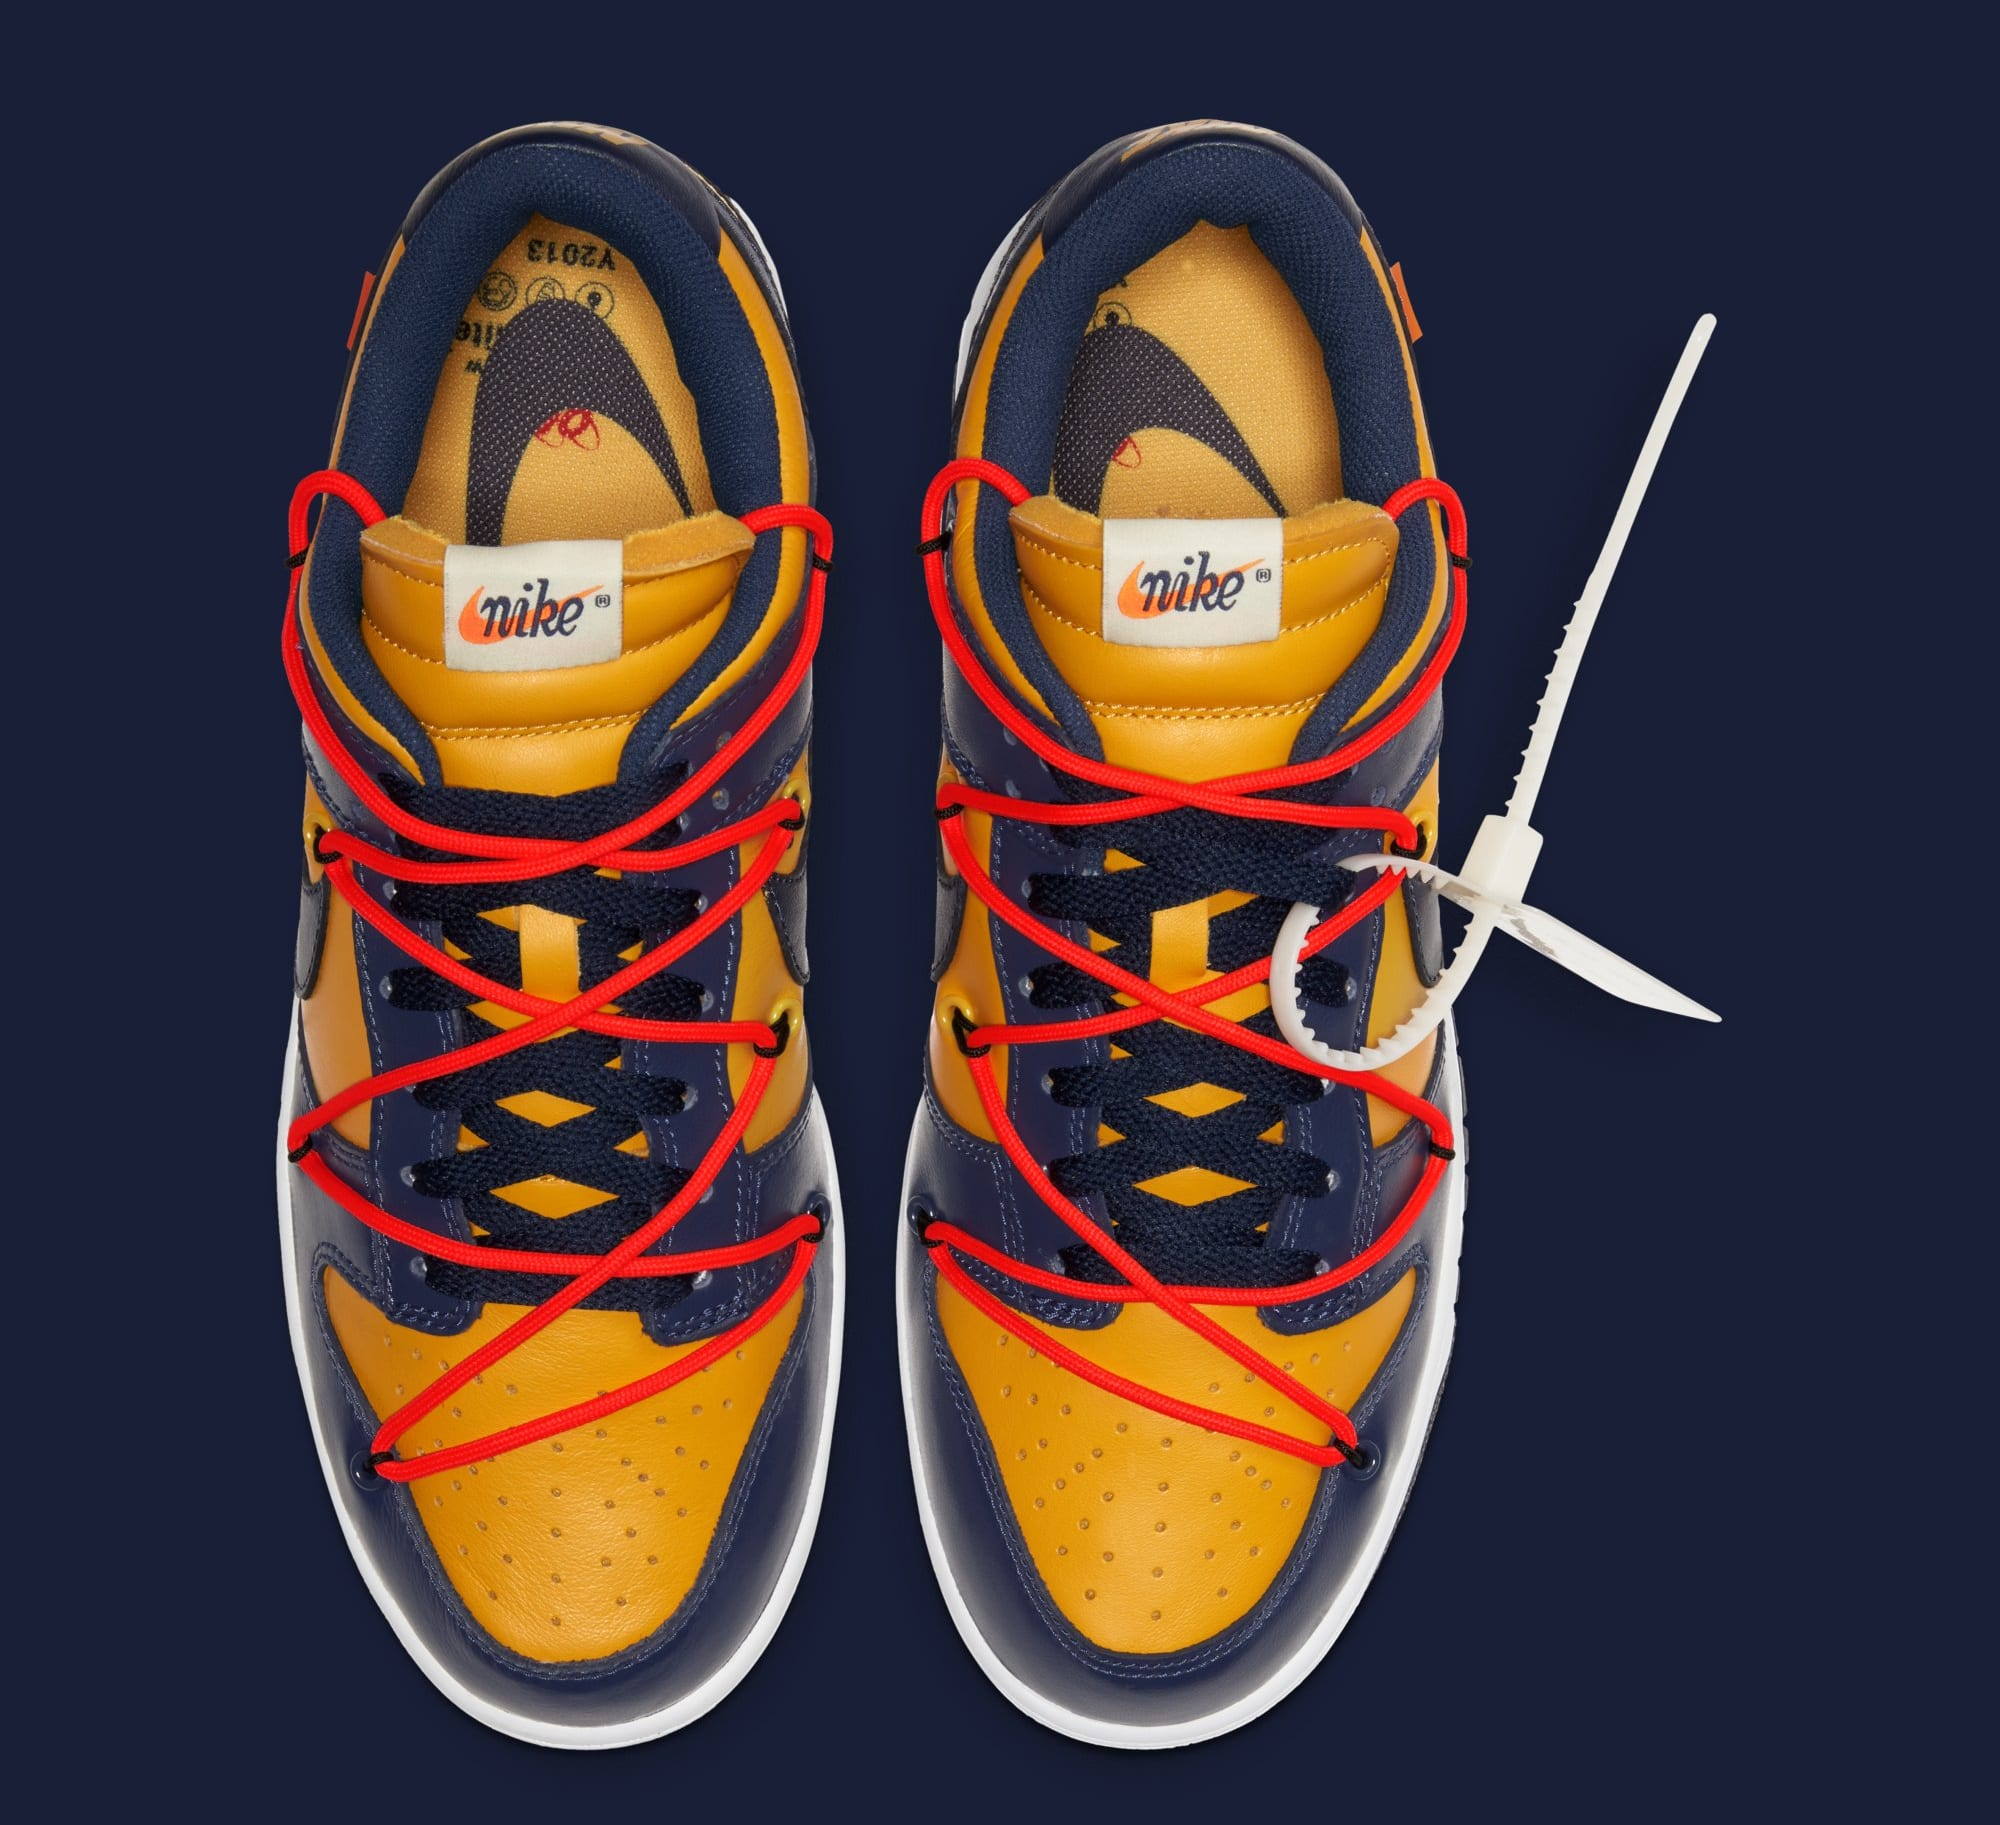 Off-White x Nike Dunk Low 'University Gold/White/Midnight Navy' CT0856-700 (Top)